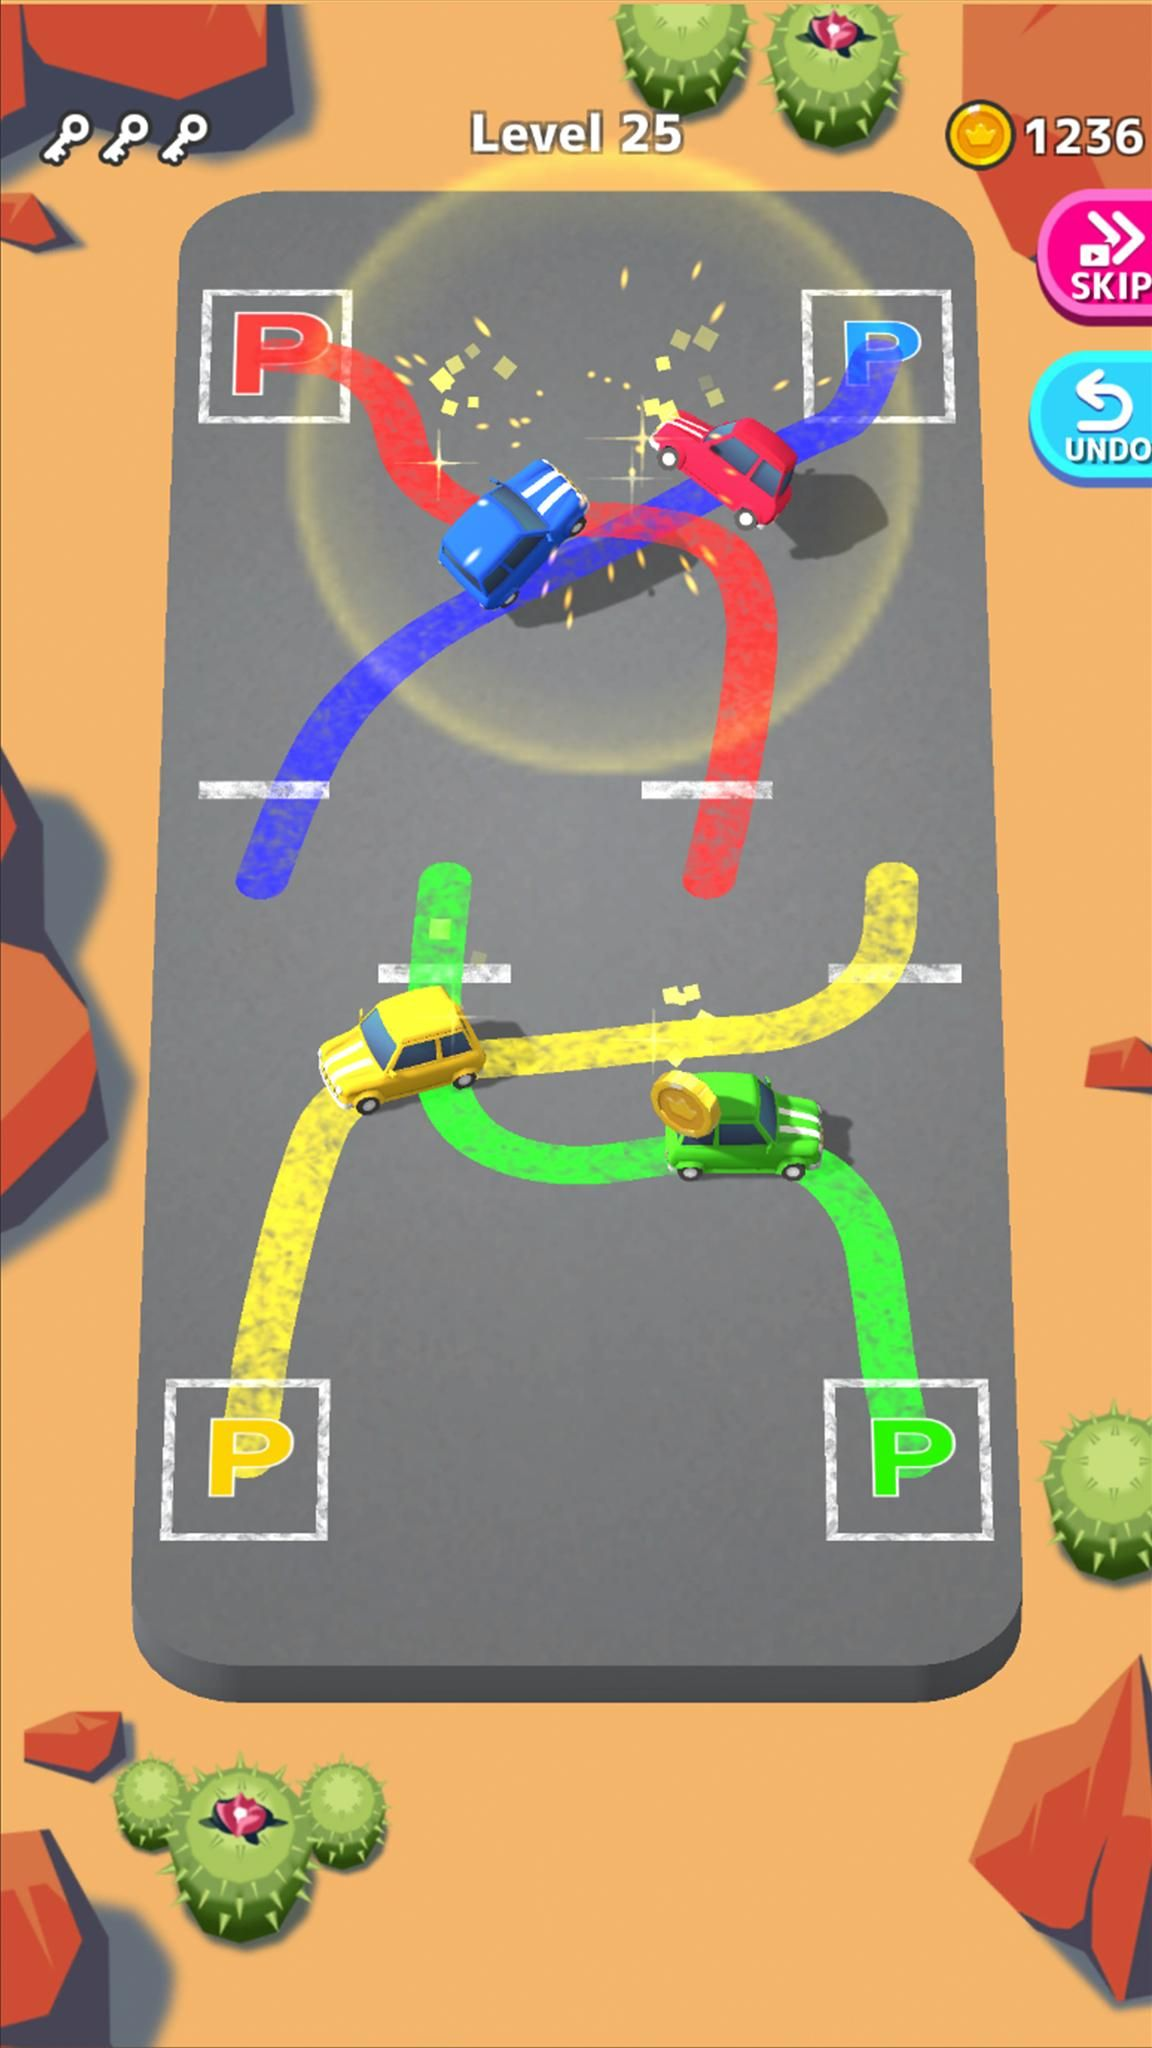 Download Park Master Mod Apk For Android Techbigs In 2020 Game App Mod Master